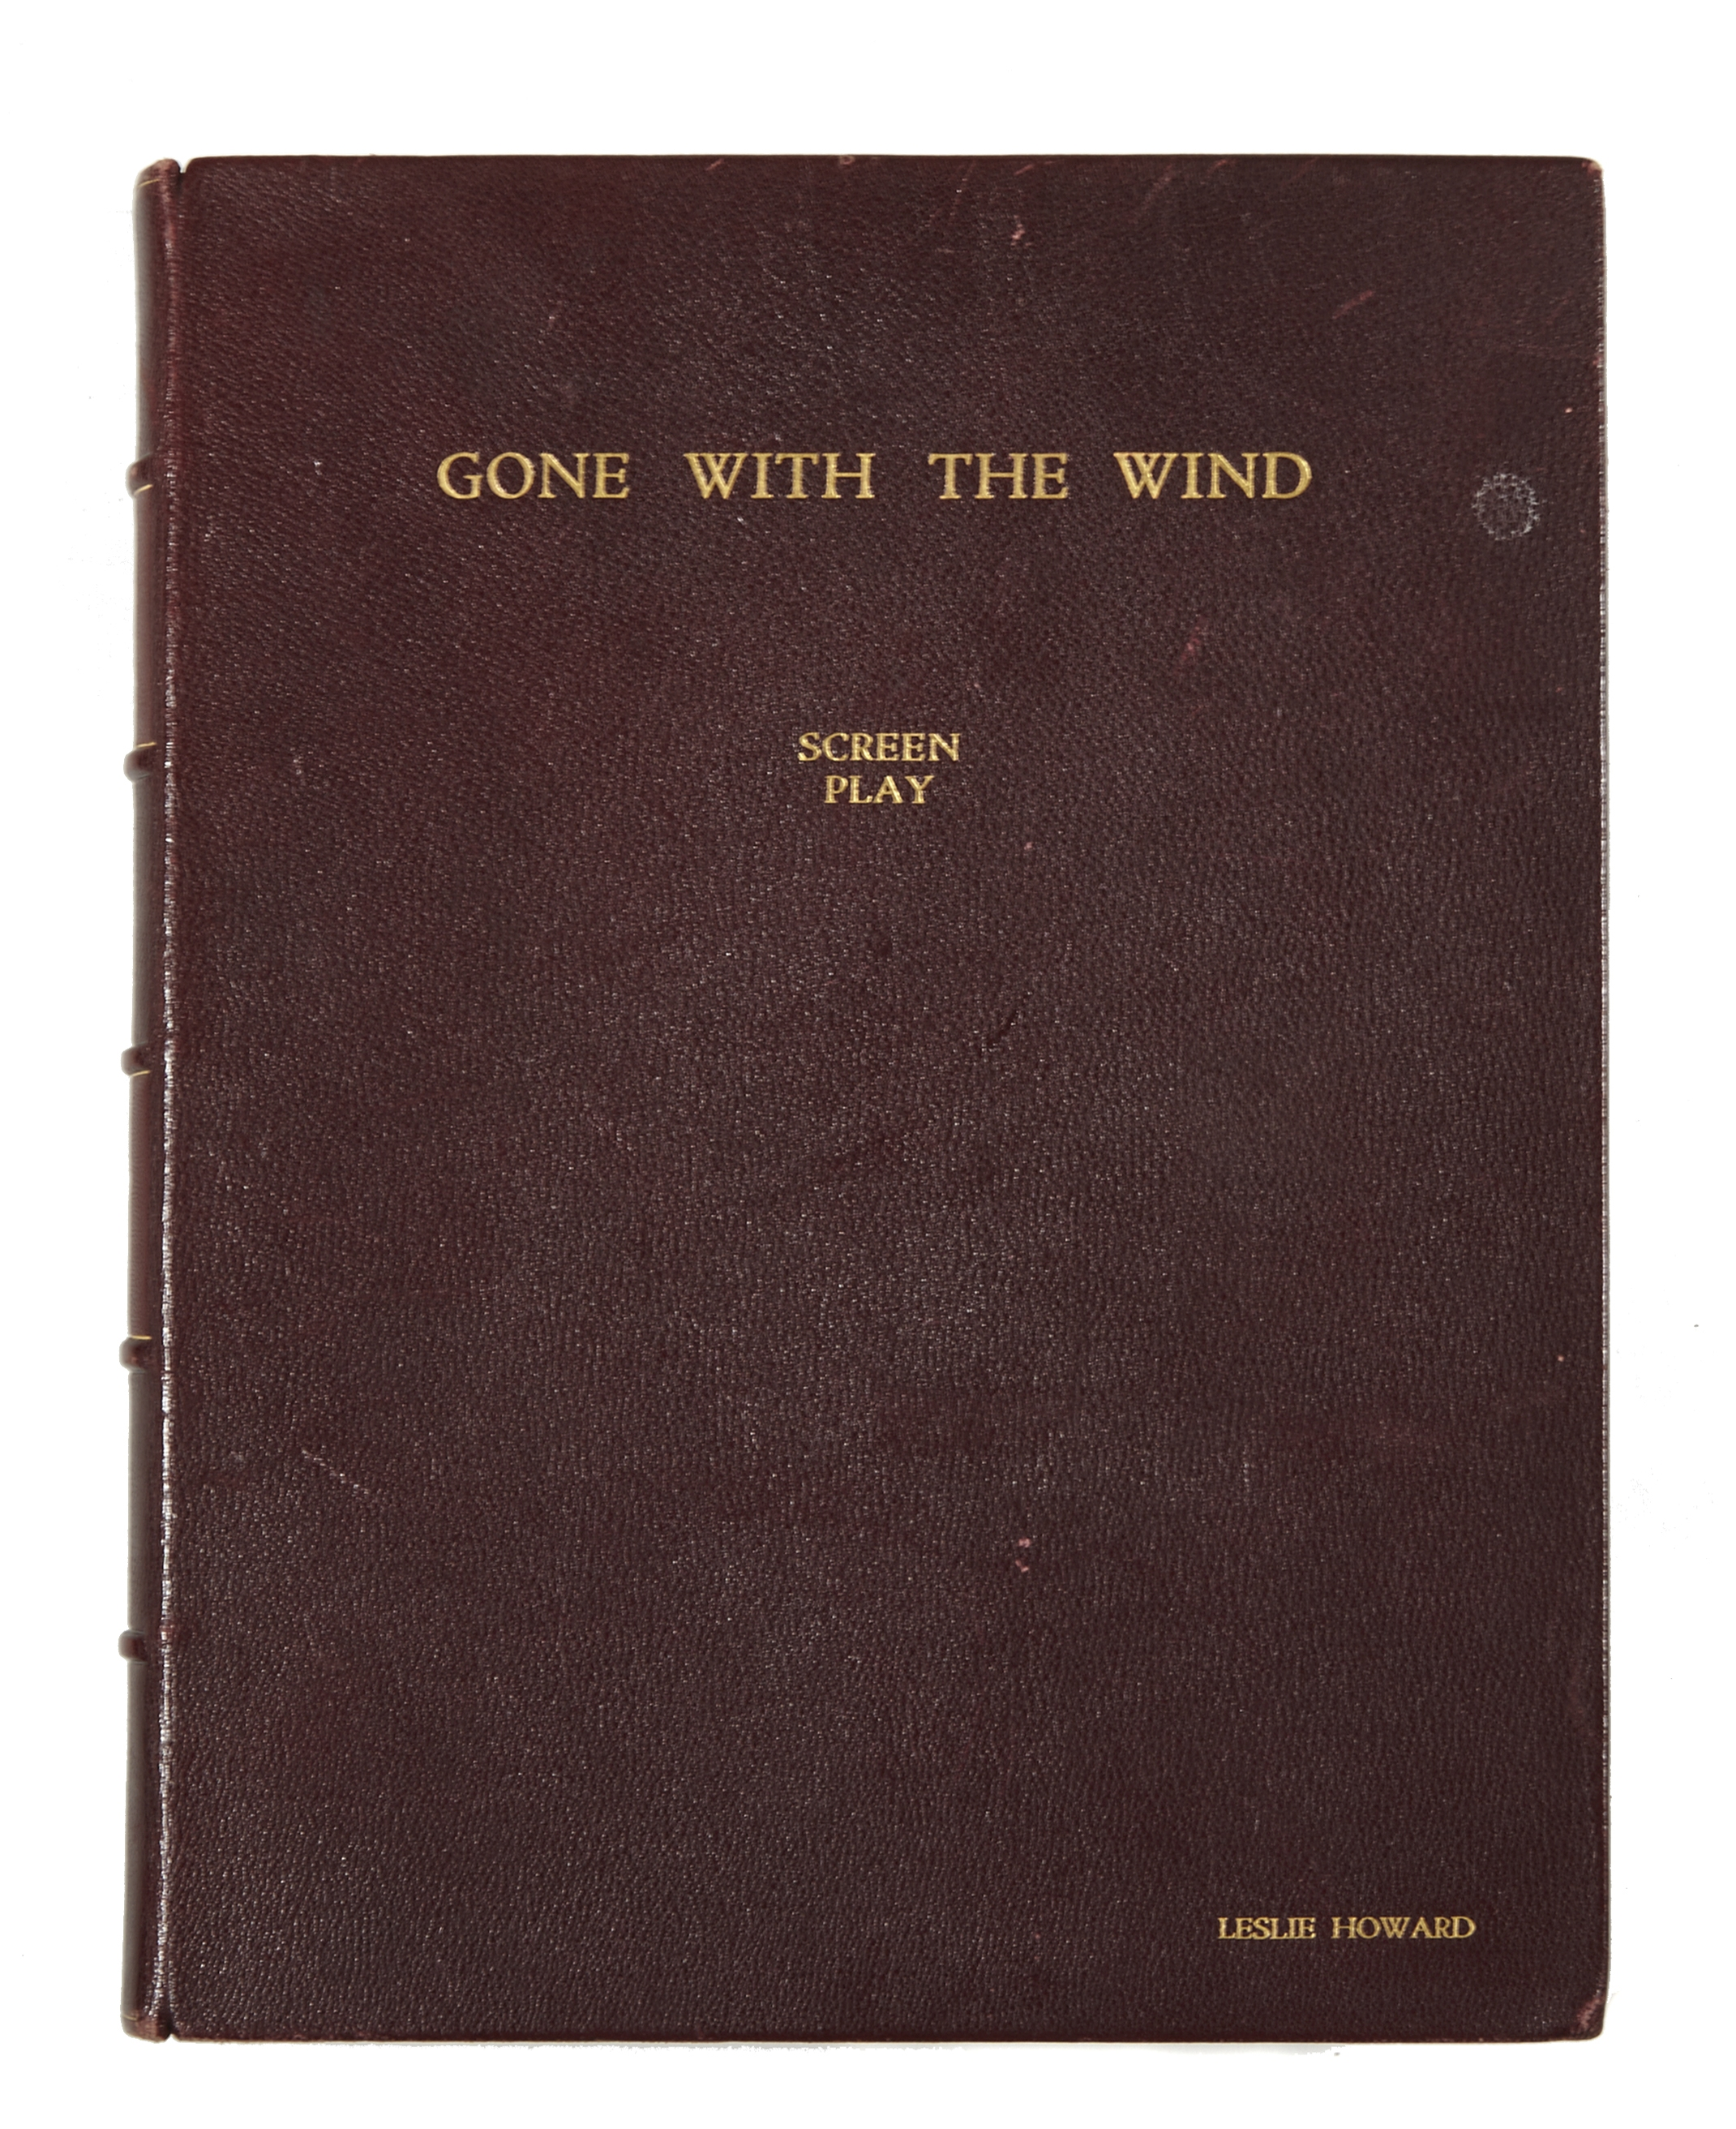 Lot 1057 - A Leslie Howard custom-bound final shooting script of Gone With the Wind, gifted to him by David ...